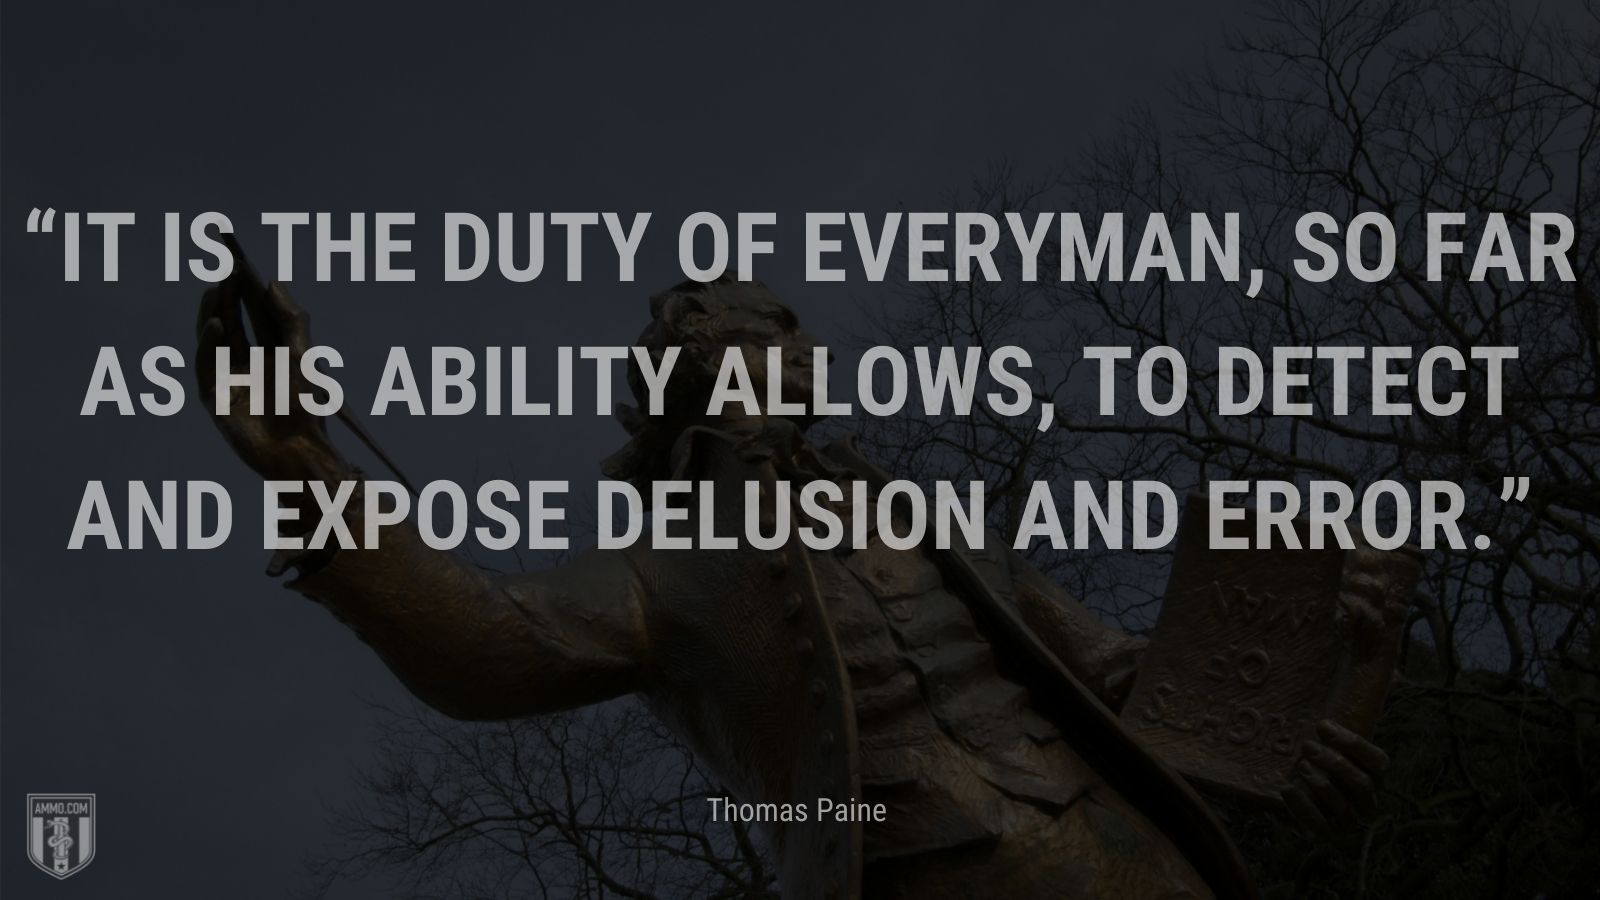 """""""It is the duty of everyman, so far as his ability allows, to detect and expose delusion and error."""" - Thomas Paine"""